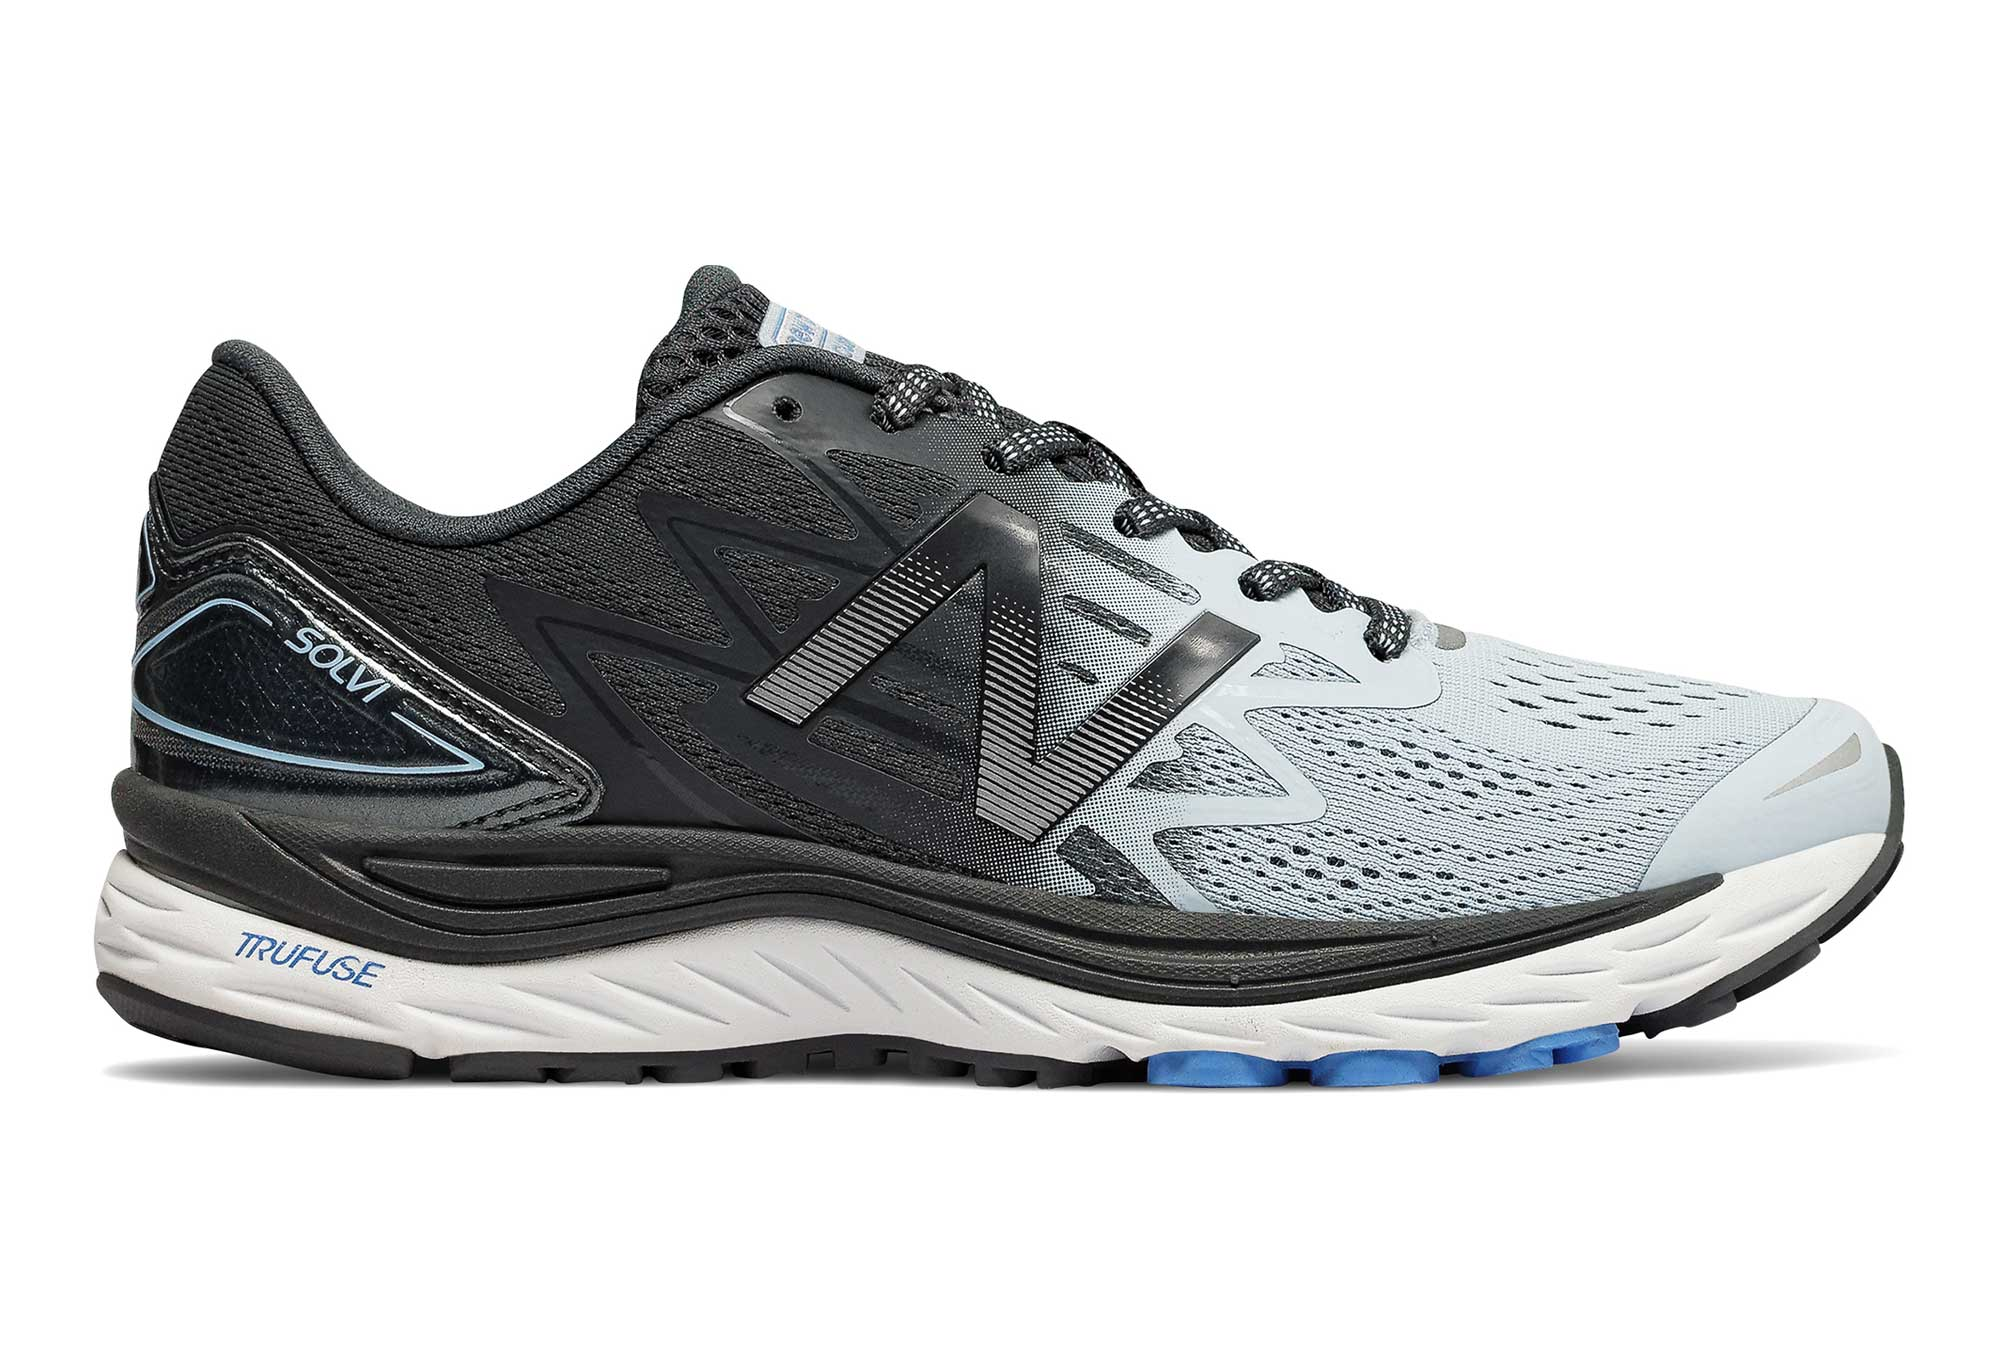 new balance mujer negras y azul